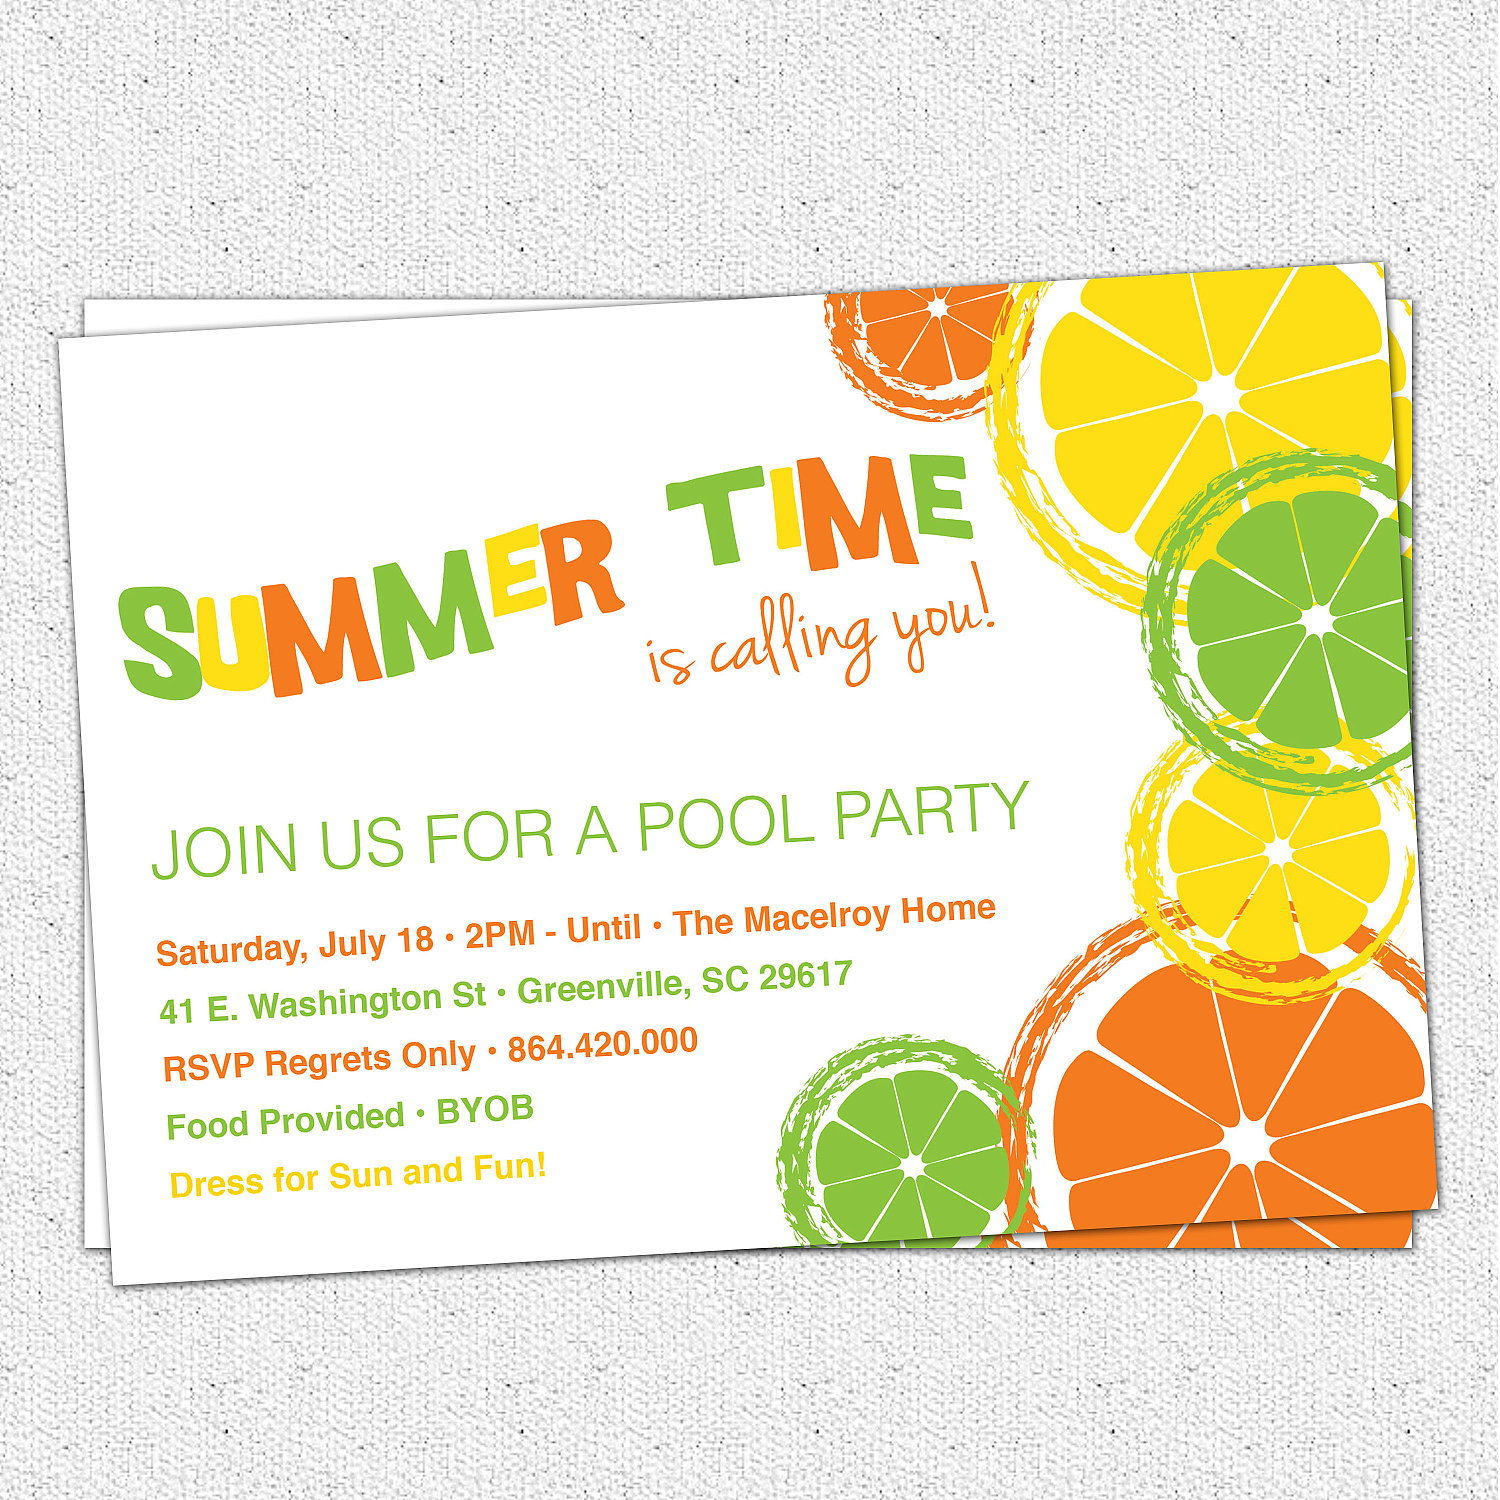 open house birthday party invitation wording ; ideas-of-invitation-wording-for-home-party-about-citrus-invitations-summer-pool-party-lemon-lime-orange-of-invitation-wording-for-home-party